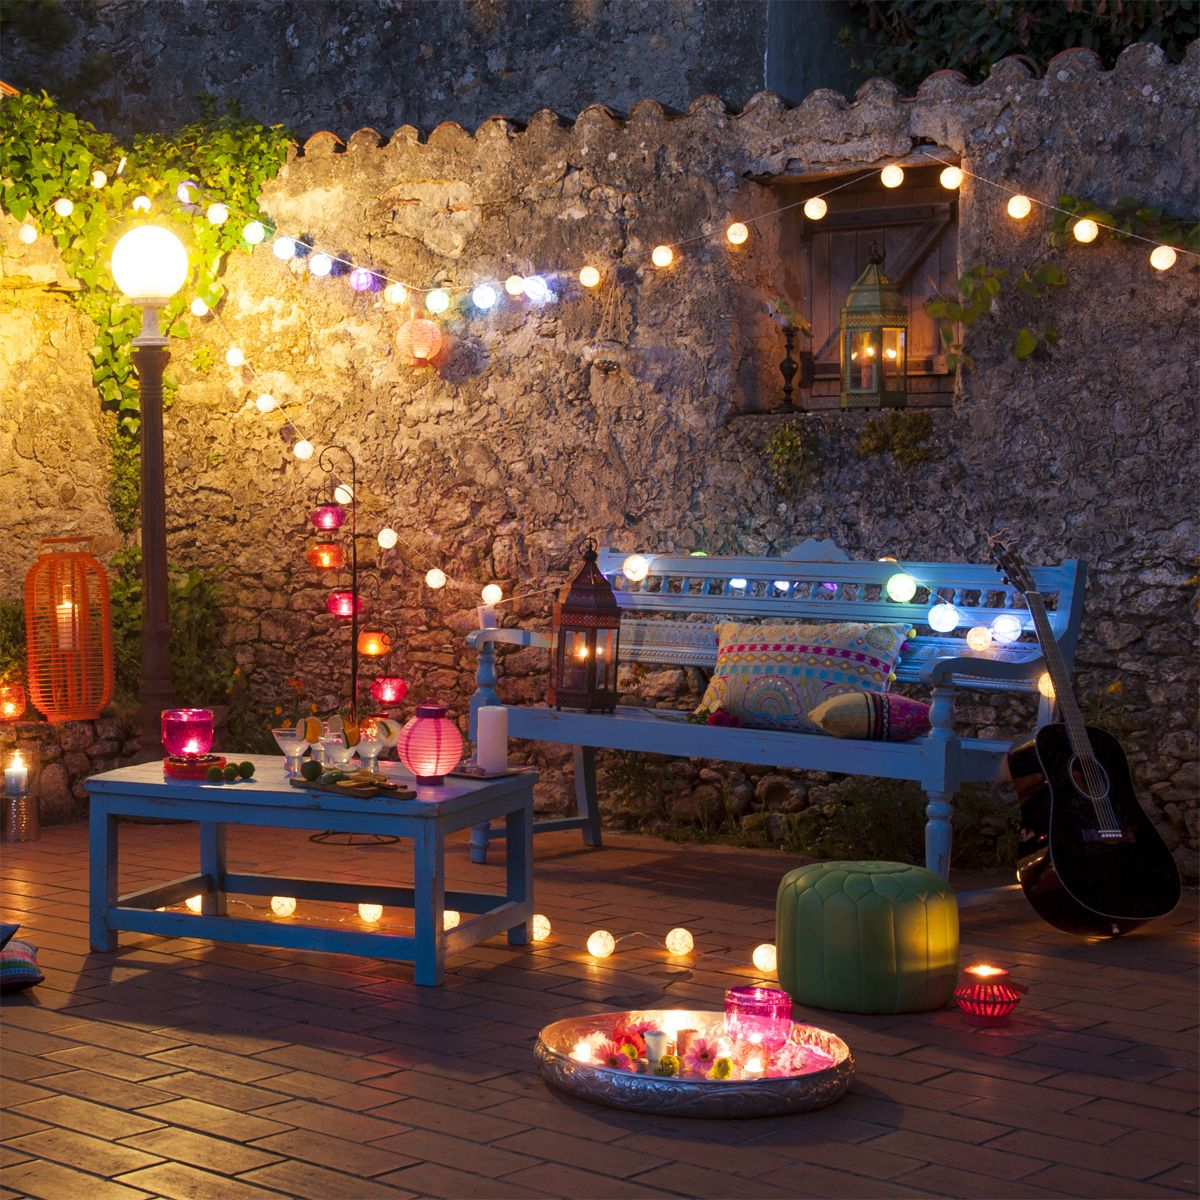 farol marbella exterior design patio terrace backyard fairy lights romantic bohemian ms